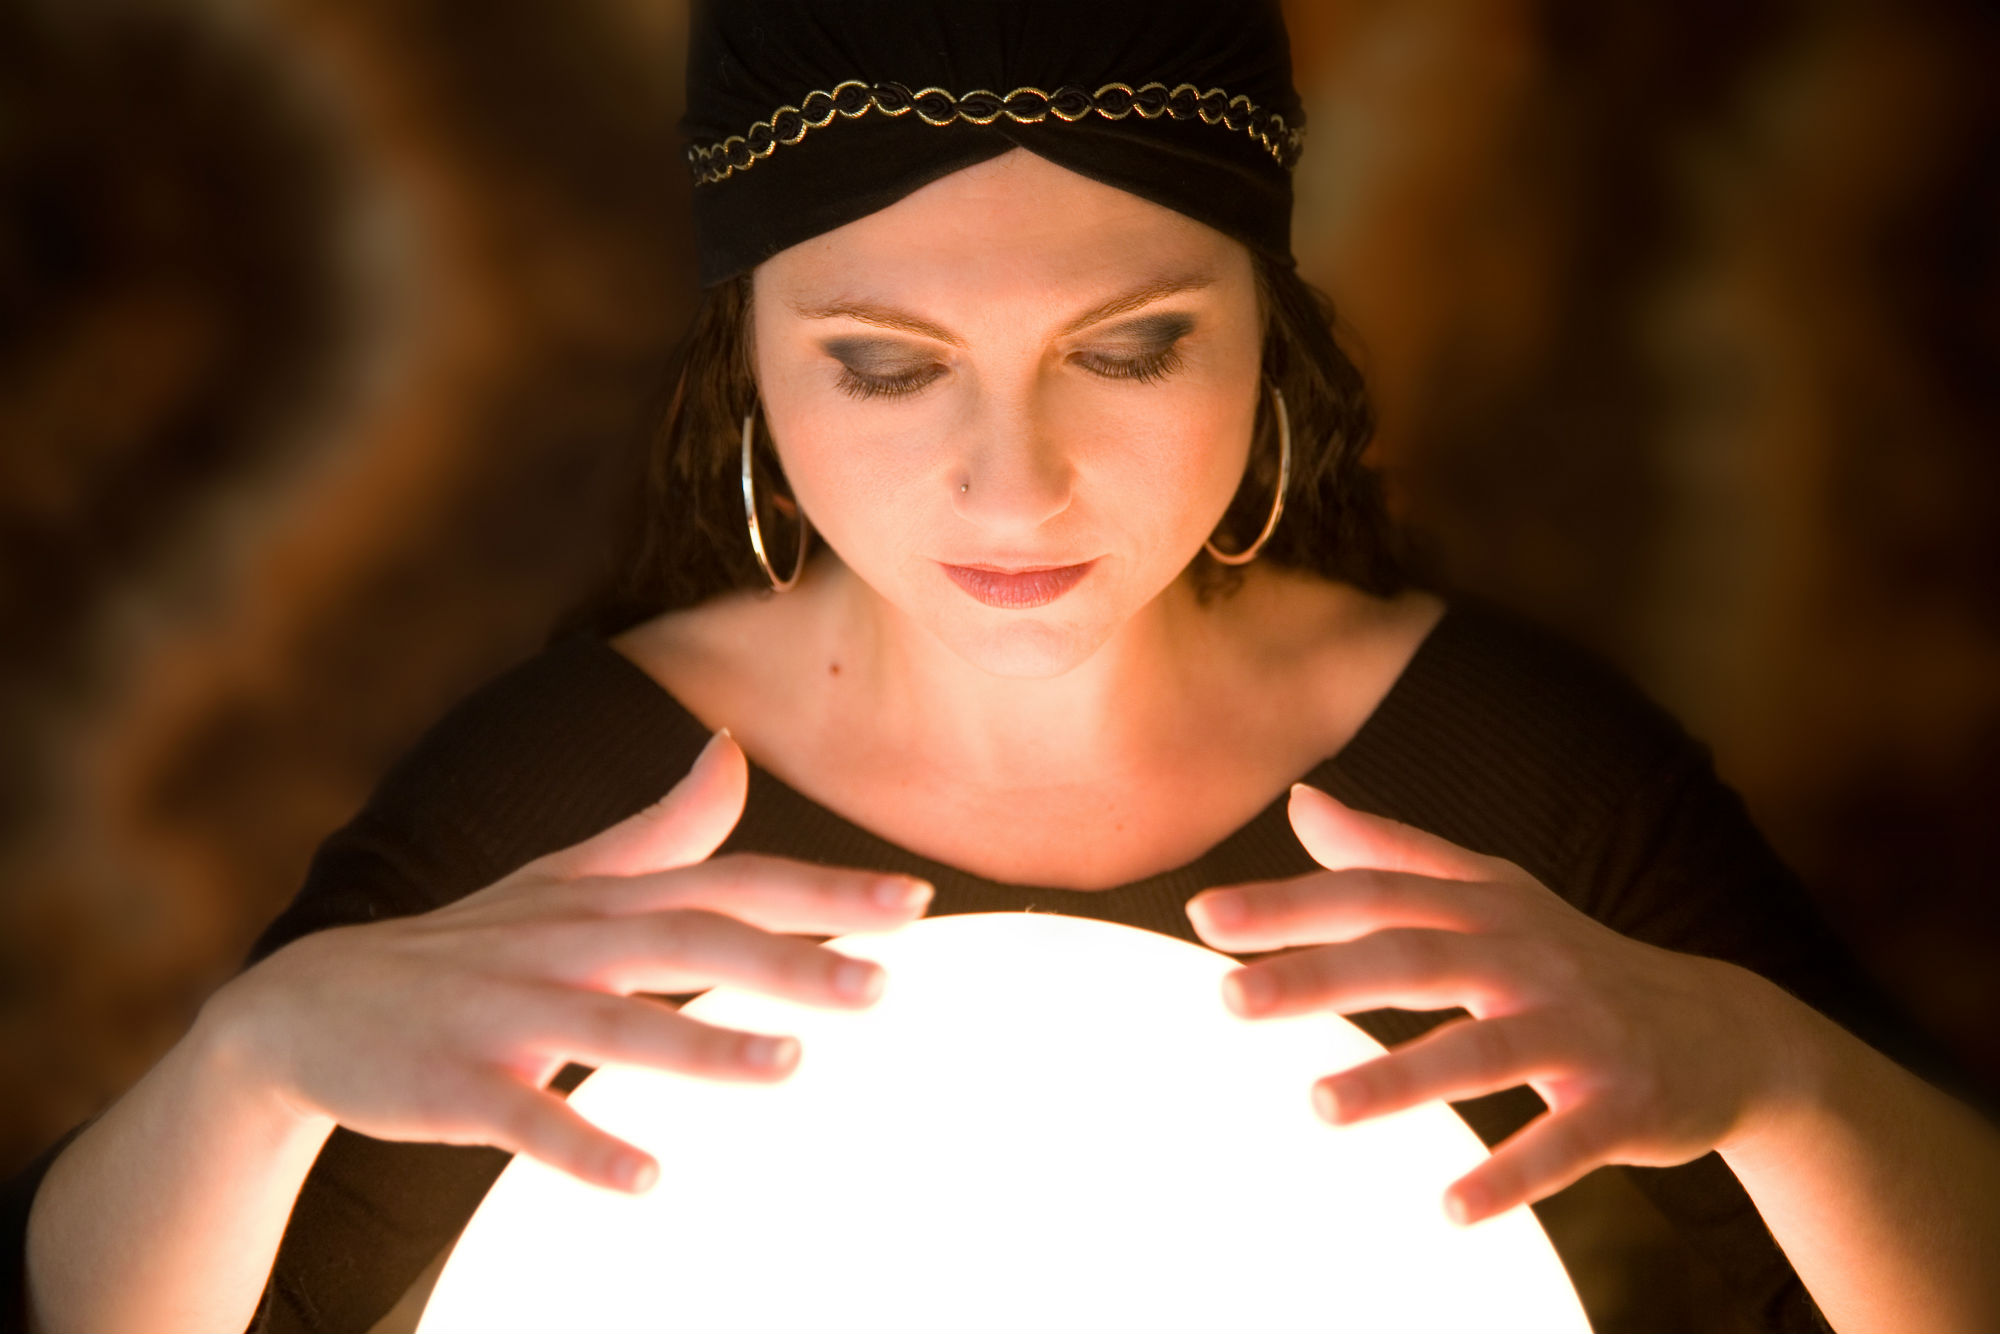 Venture Capitalists Need a Financial Psychic - Like an Outsourced CFO